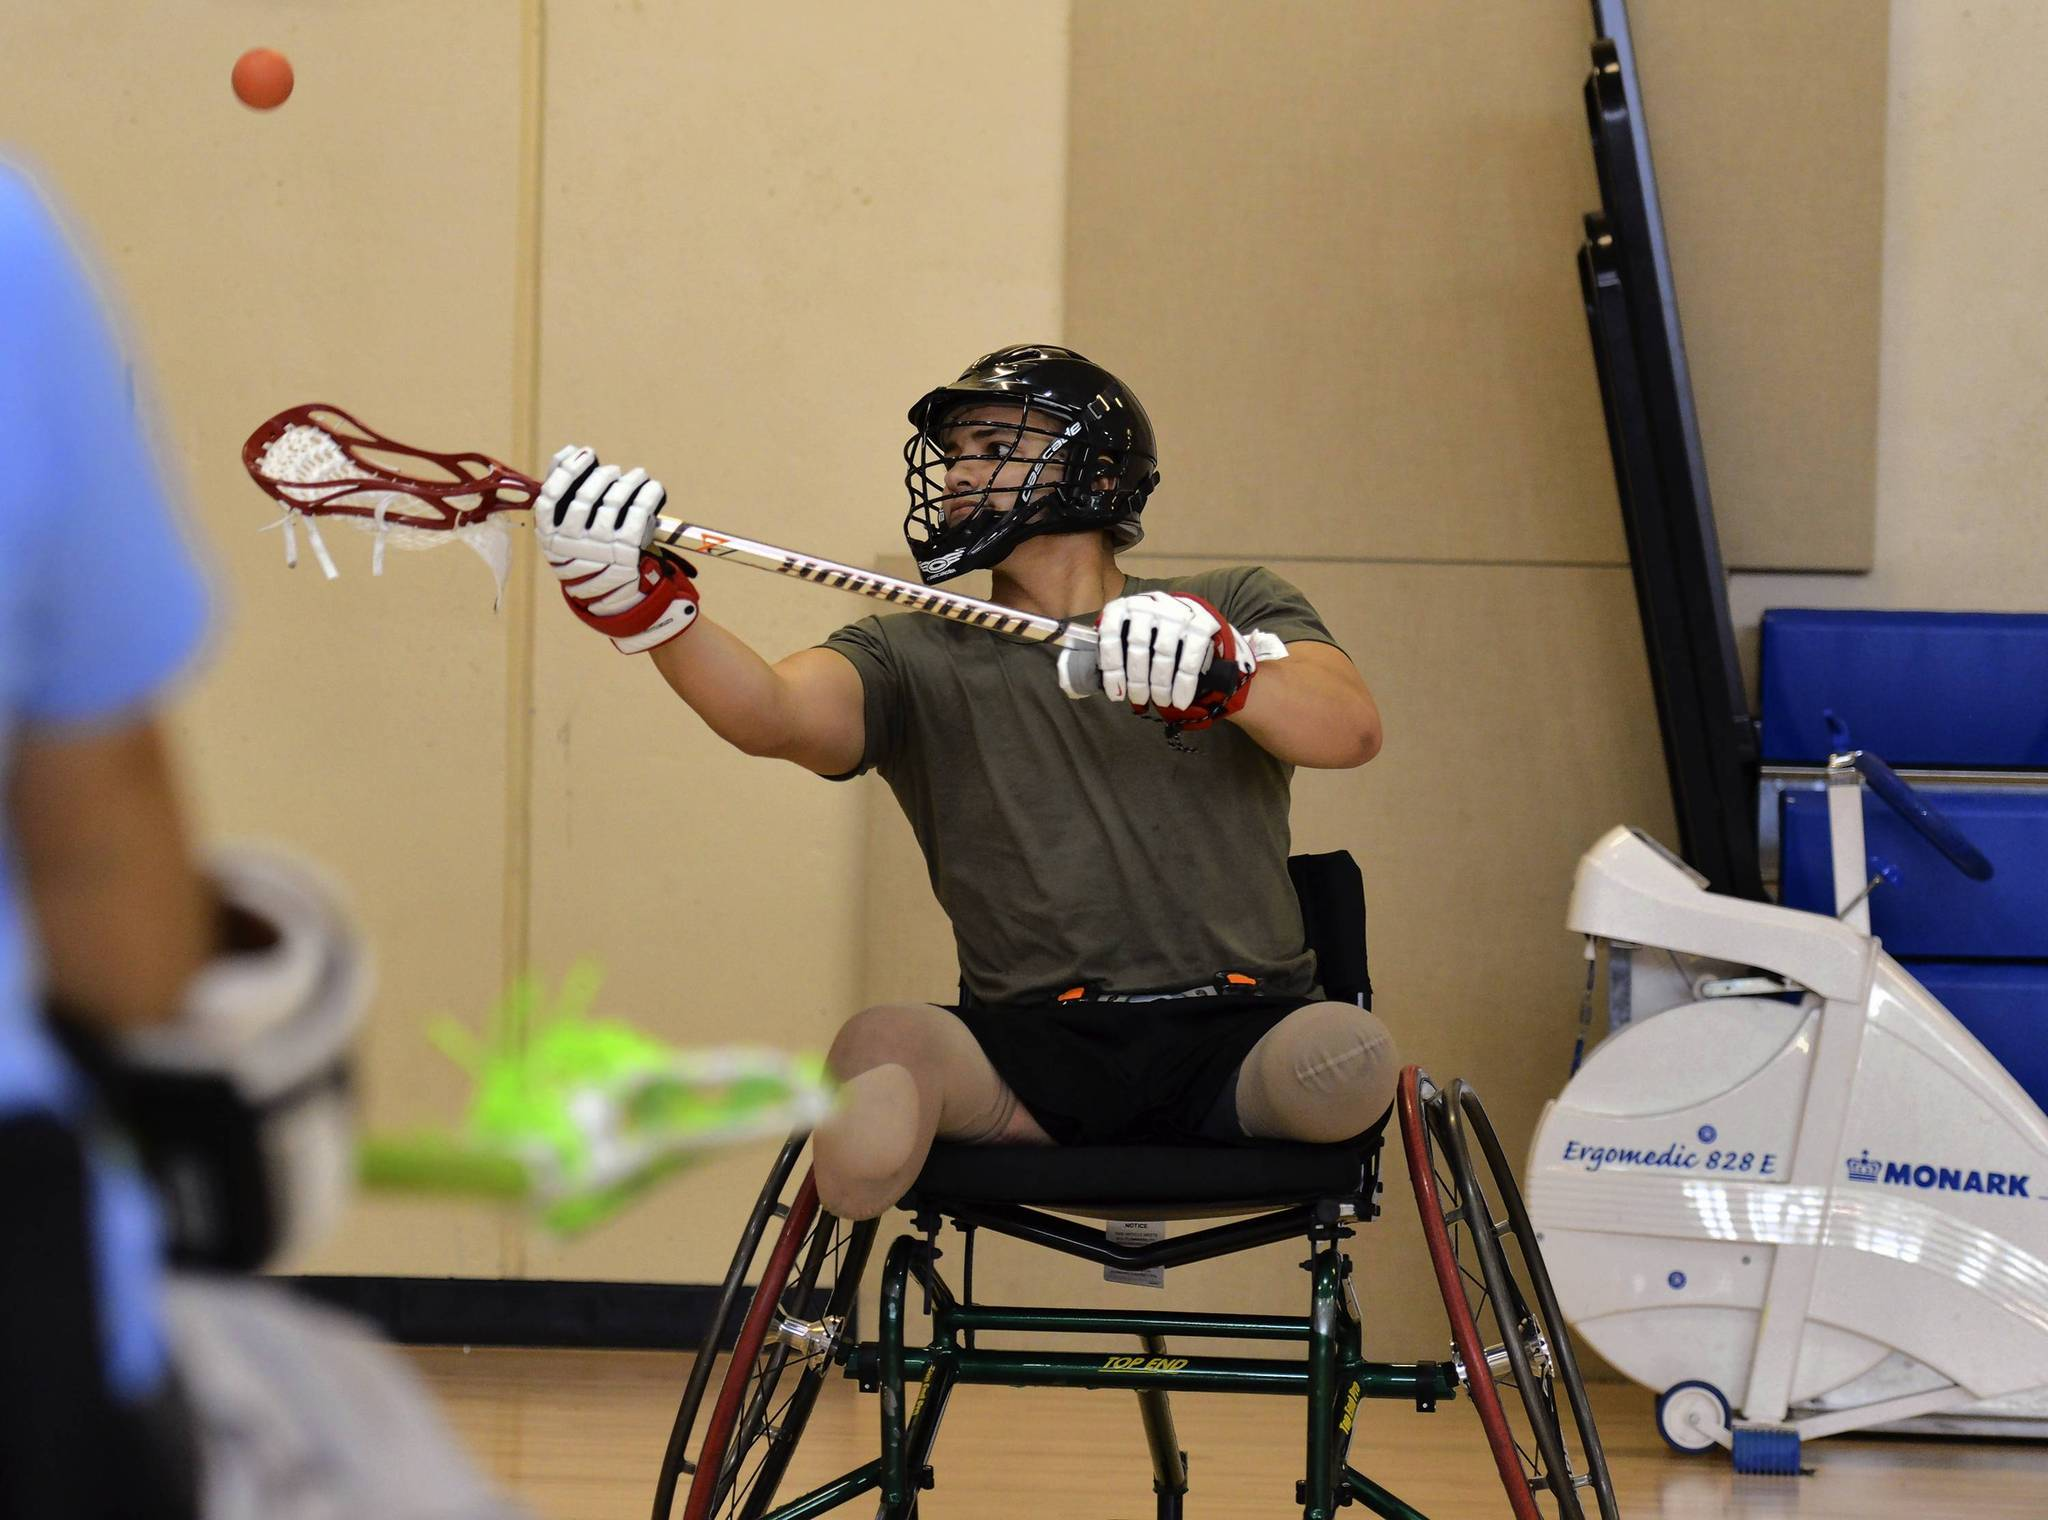 Wounded service members take on wheelchair lacrosse, embrace sport for it physicality, mental benefits